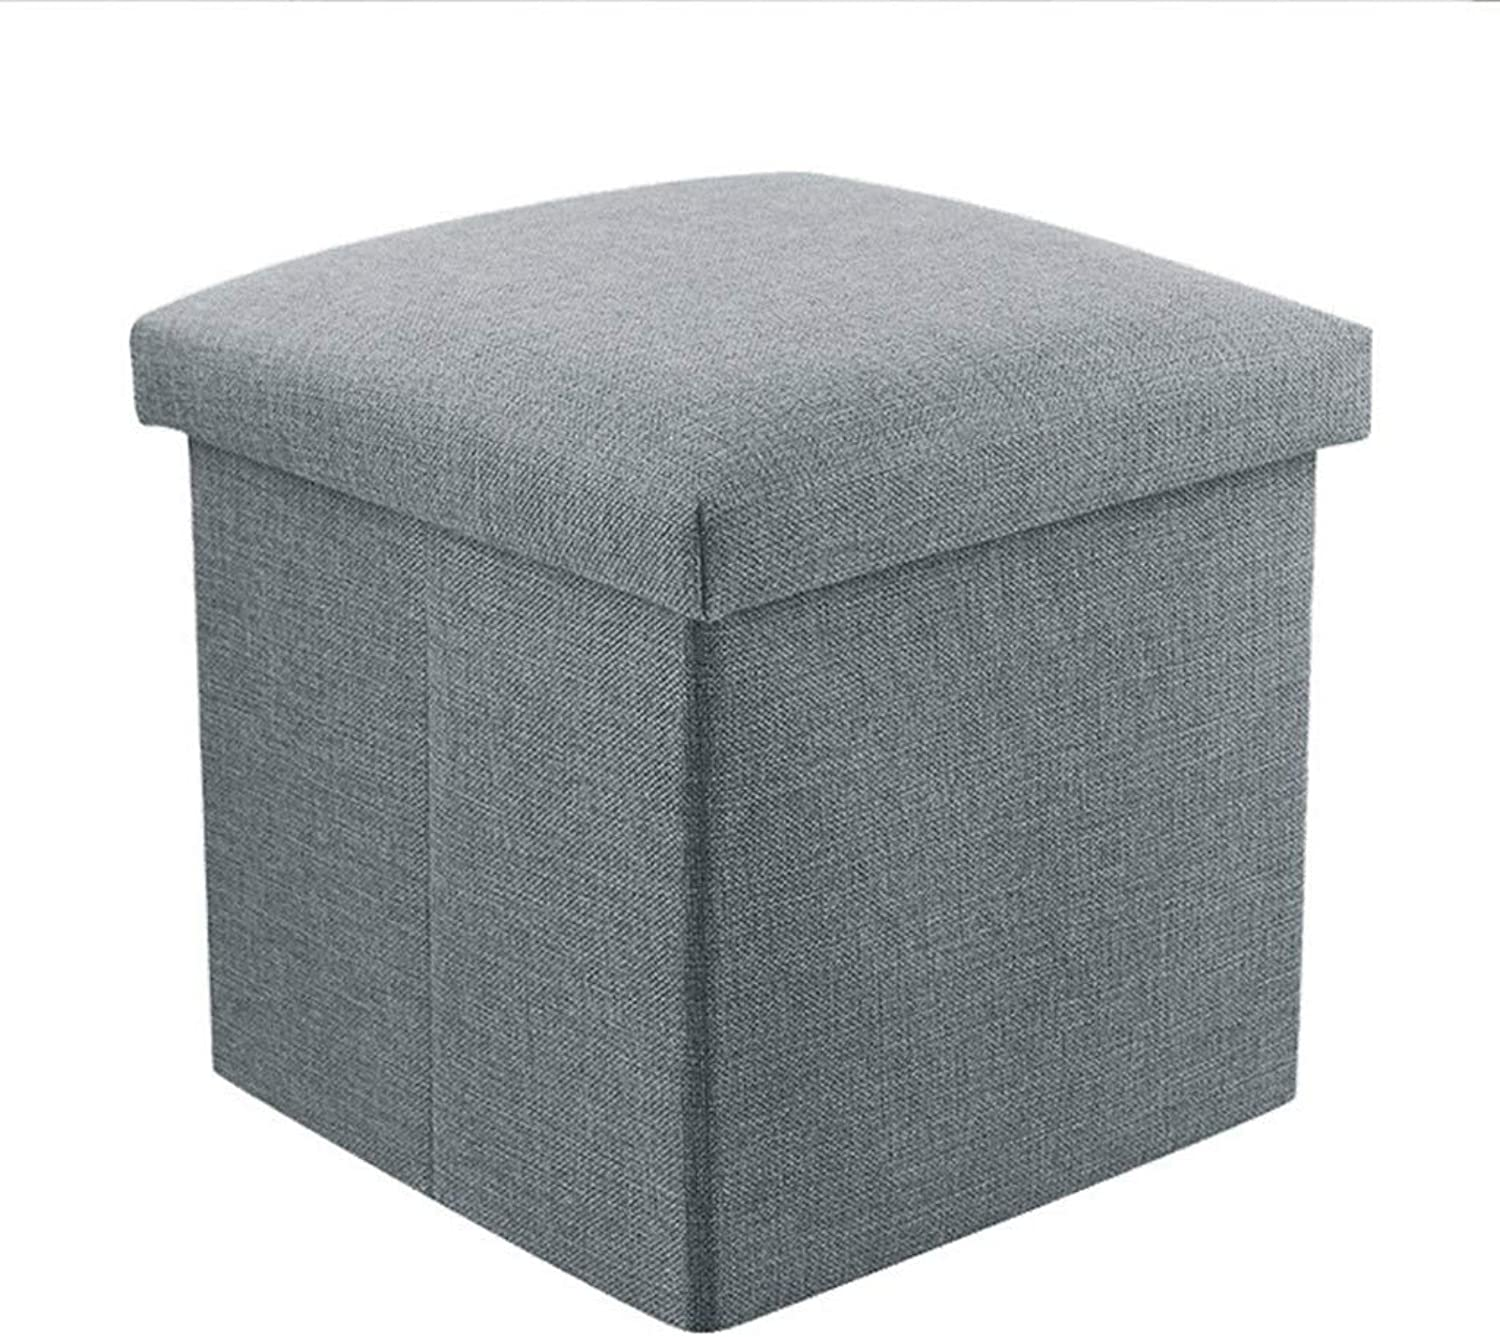 Storage Stool, Collapsible Storage Box, Fabric Footstool, Square, 30  30  30cm